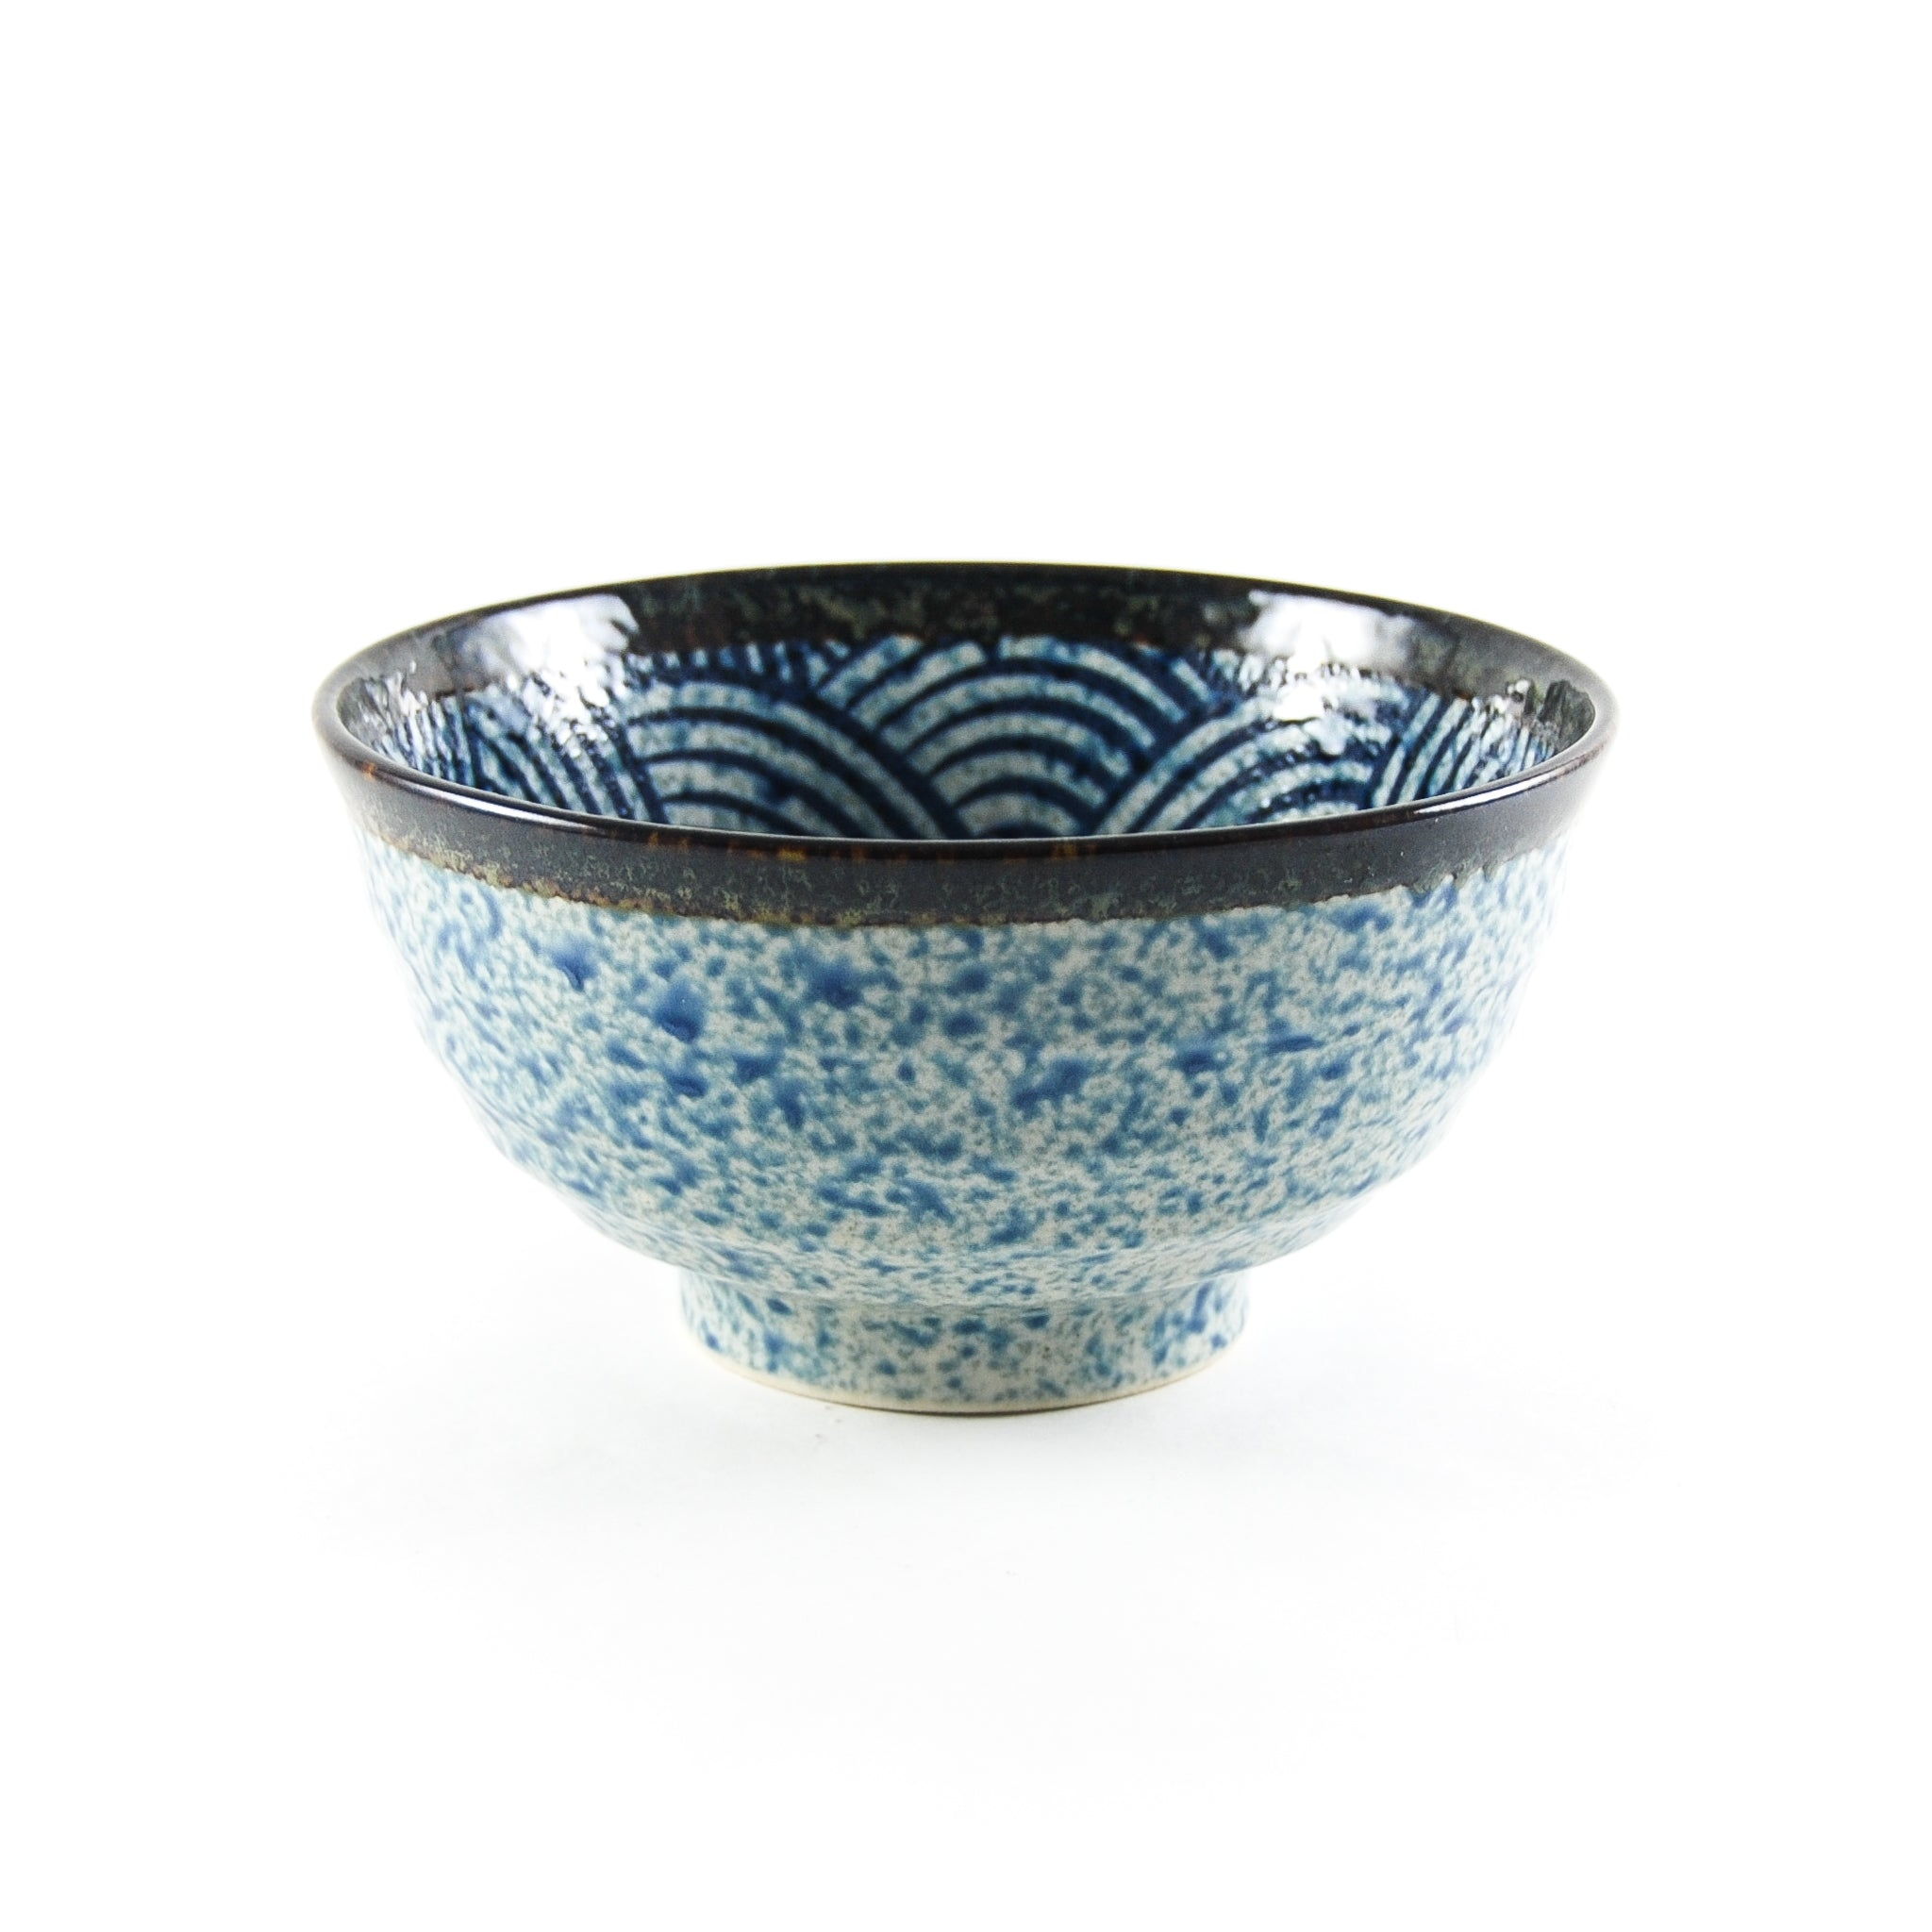 Kiji Stoneware & Ceramics Blue Wave Noodle Bowl Tableware Japanese Tableware